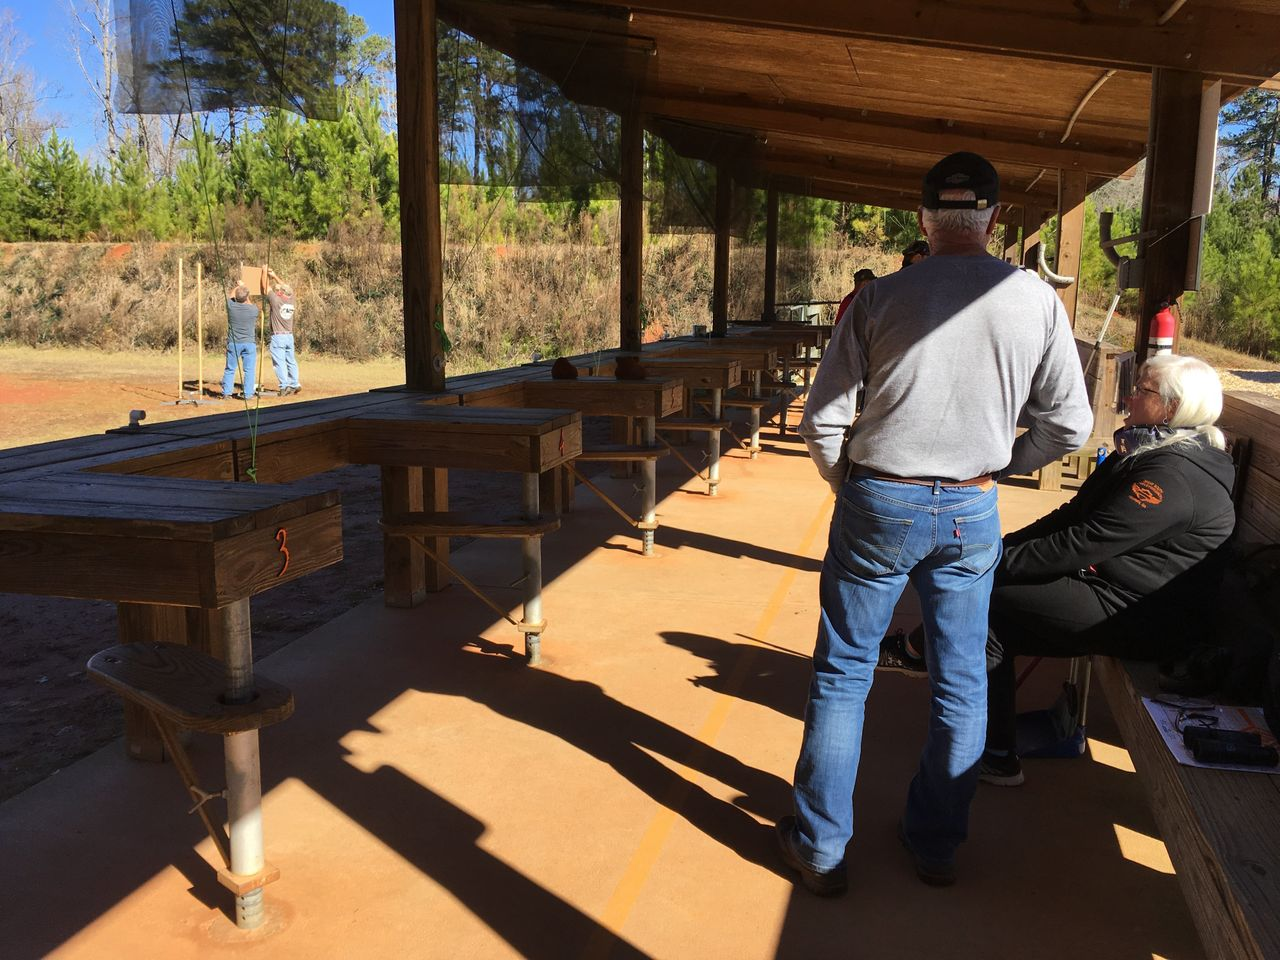 Some fellow shooters wait around while others set up their targets during a cease-fire at Cedar Creek, in January 2019.